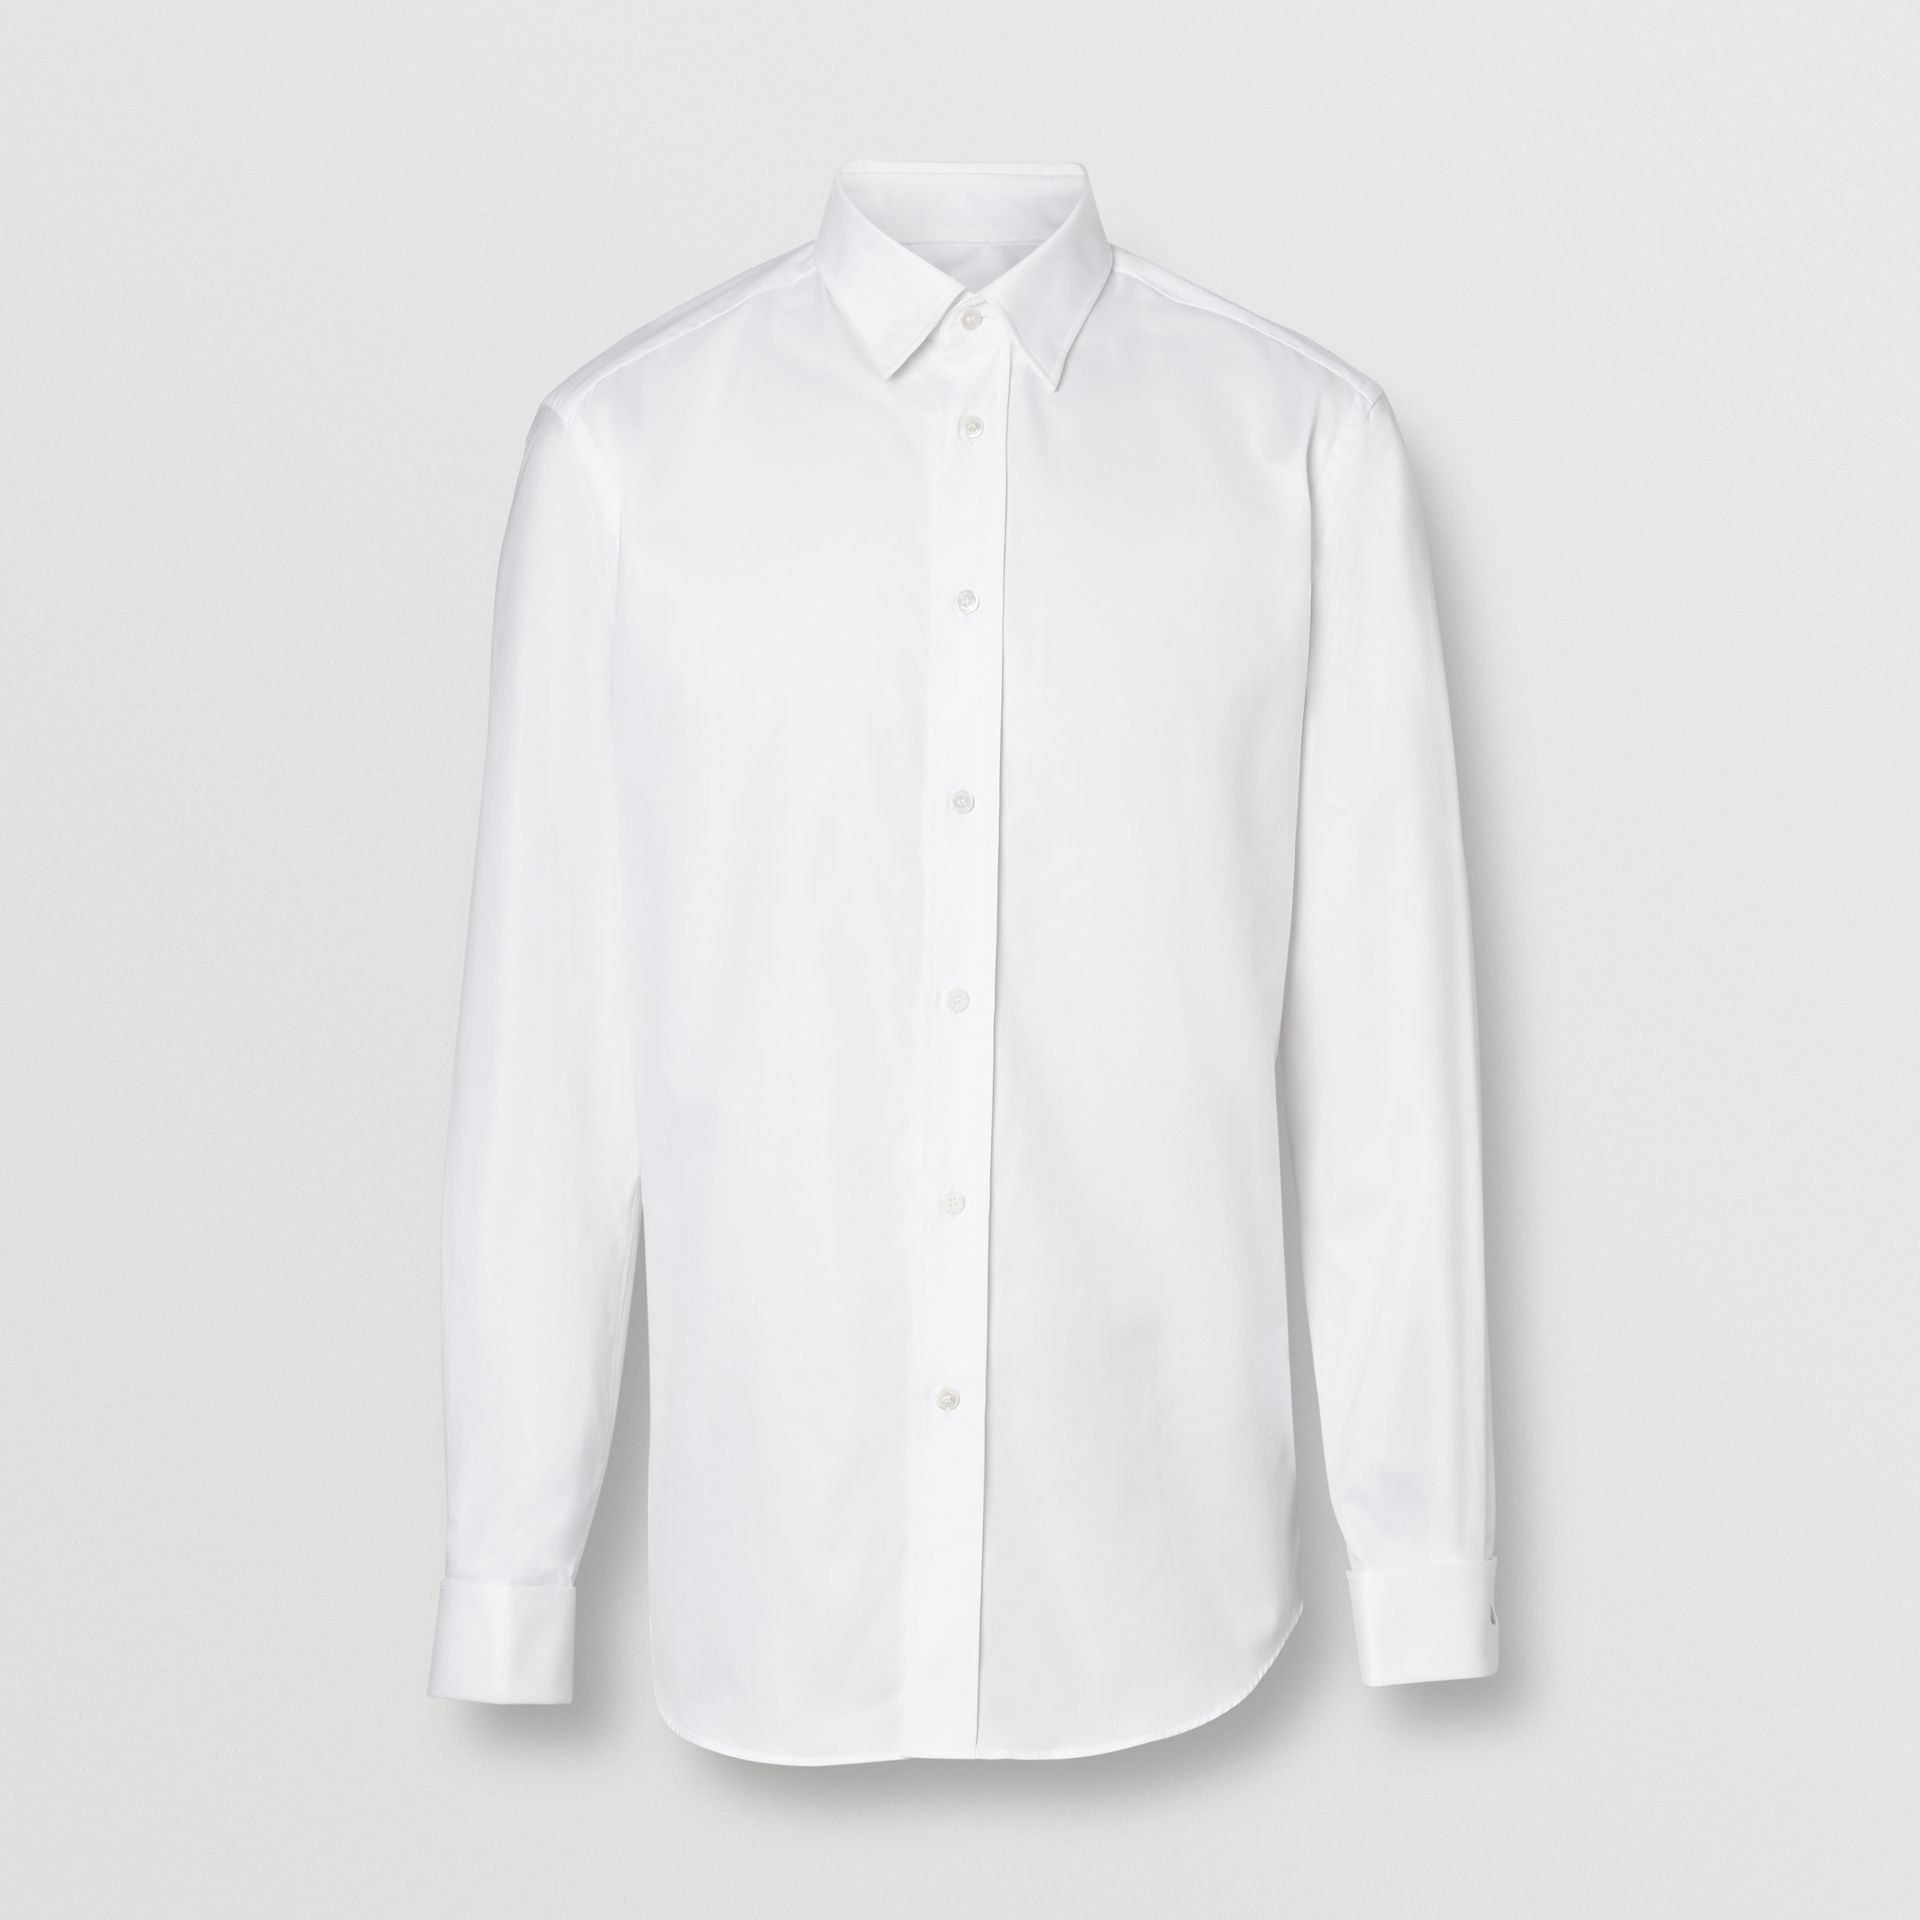 Classic Fit Monogram Motif Cotton Oxford Shirt in White - Men | Burberry - gallery image 3